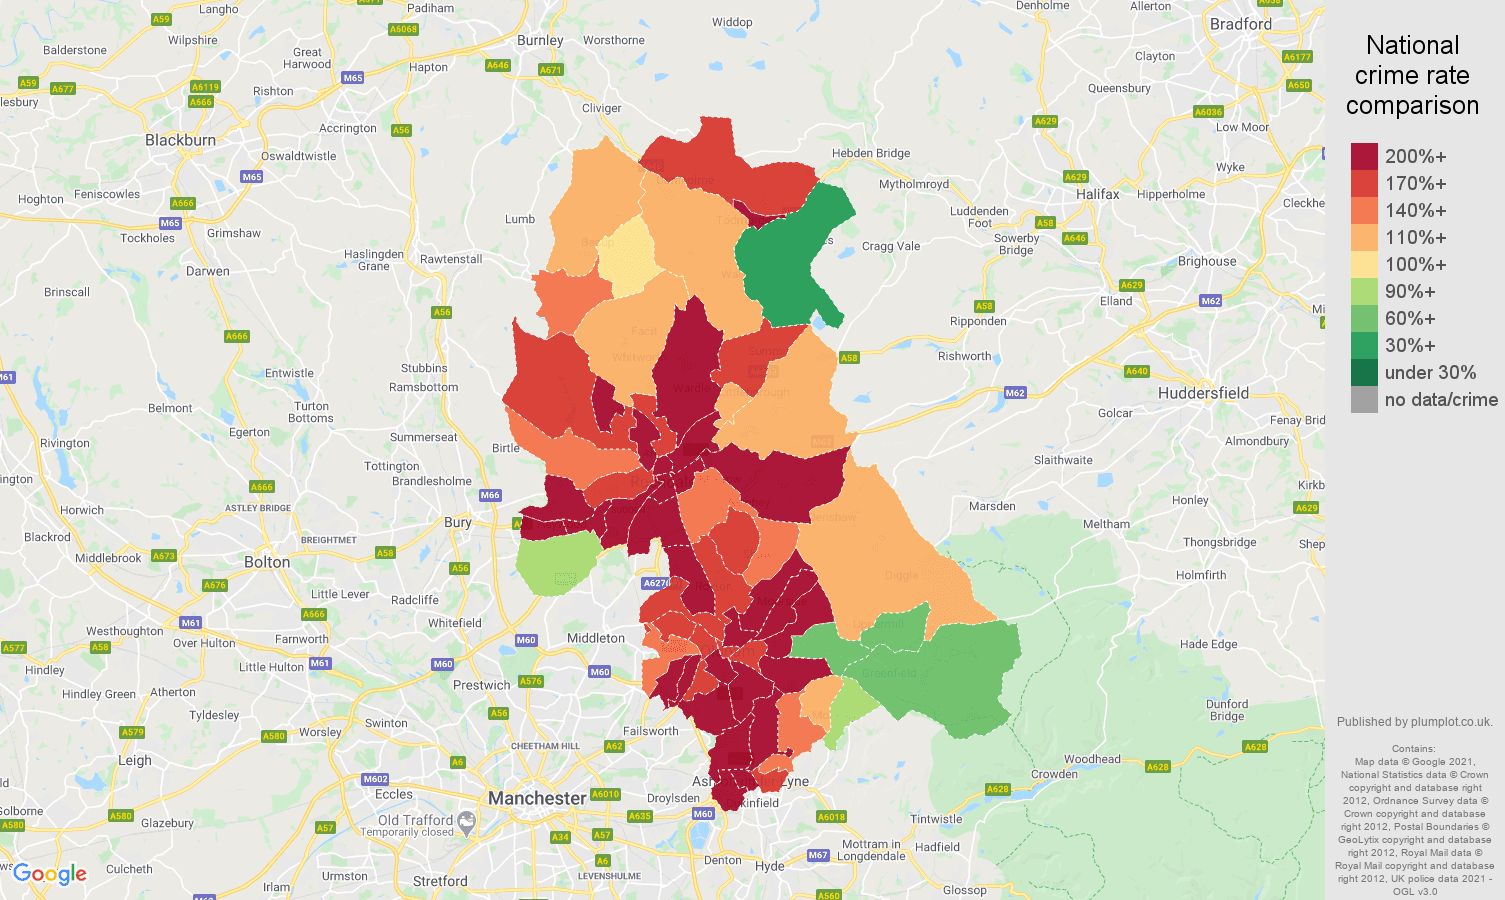 Oldham other crime rate comparison map